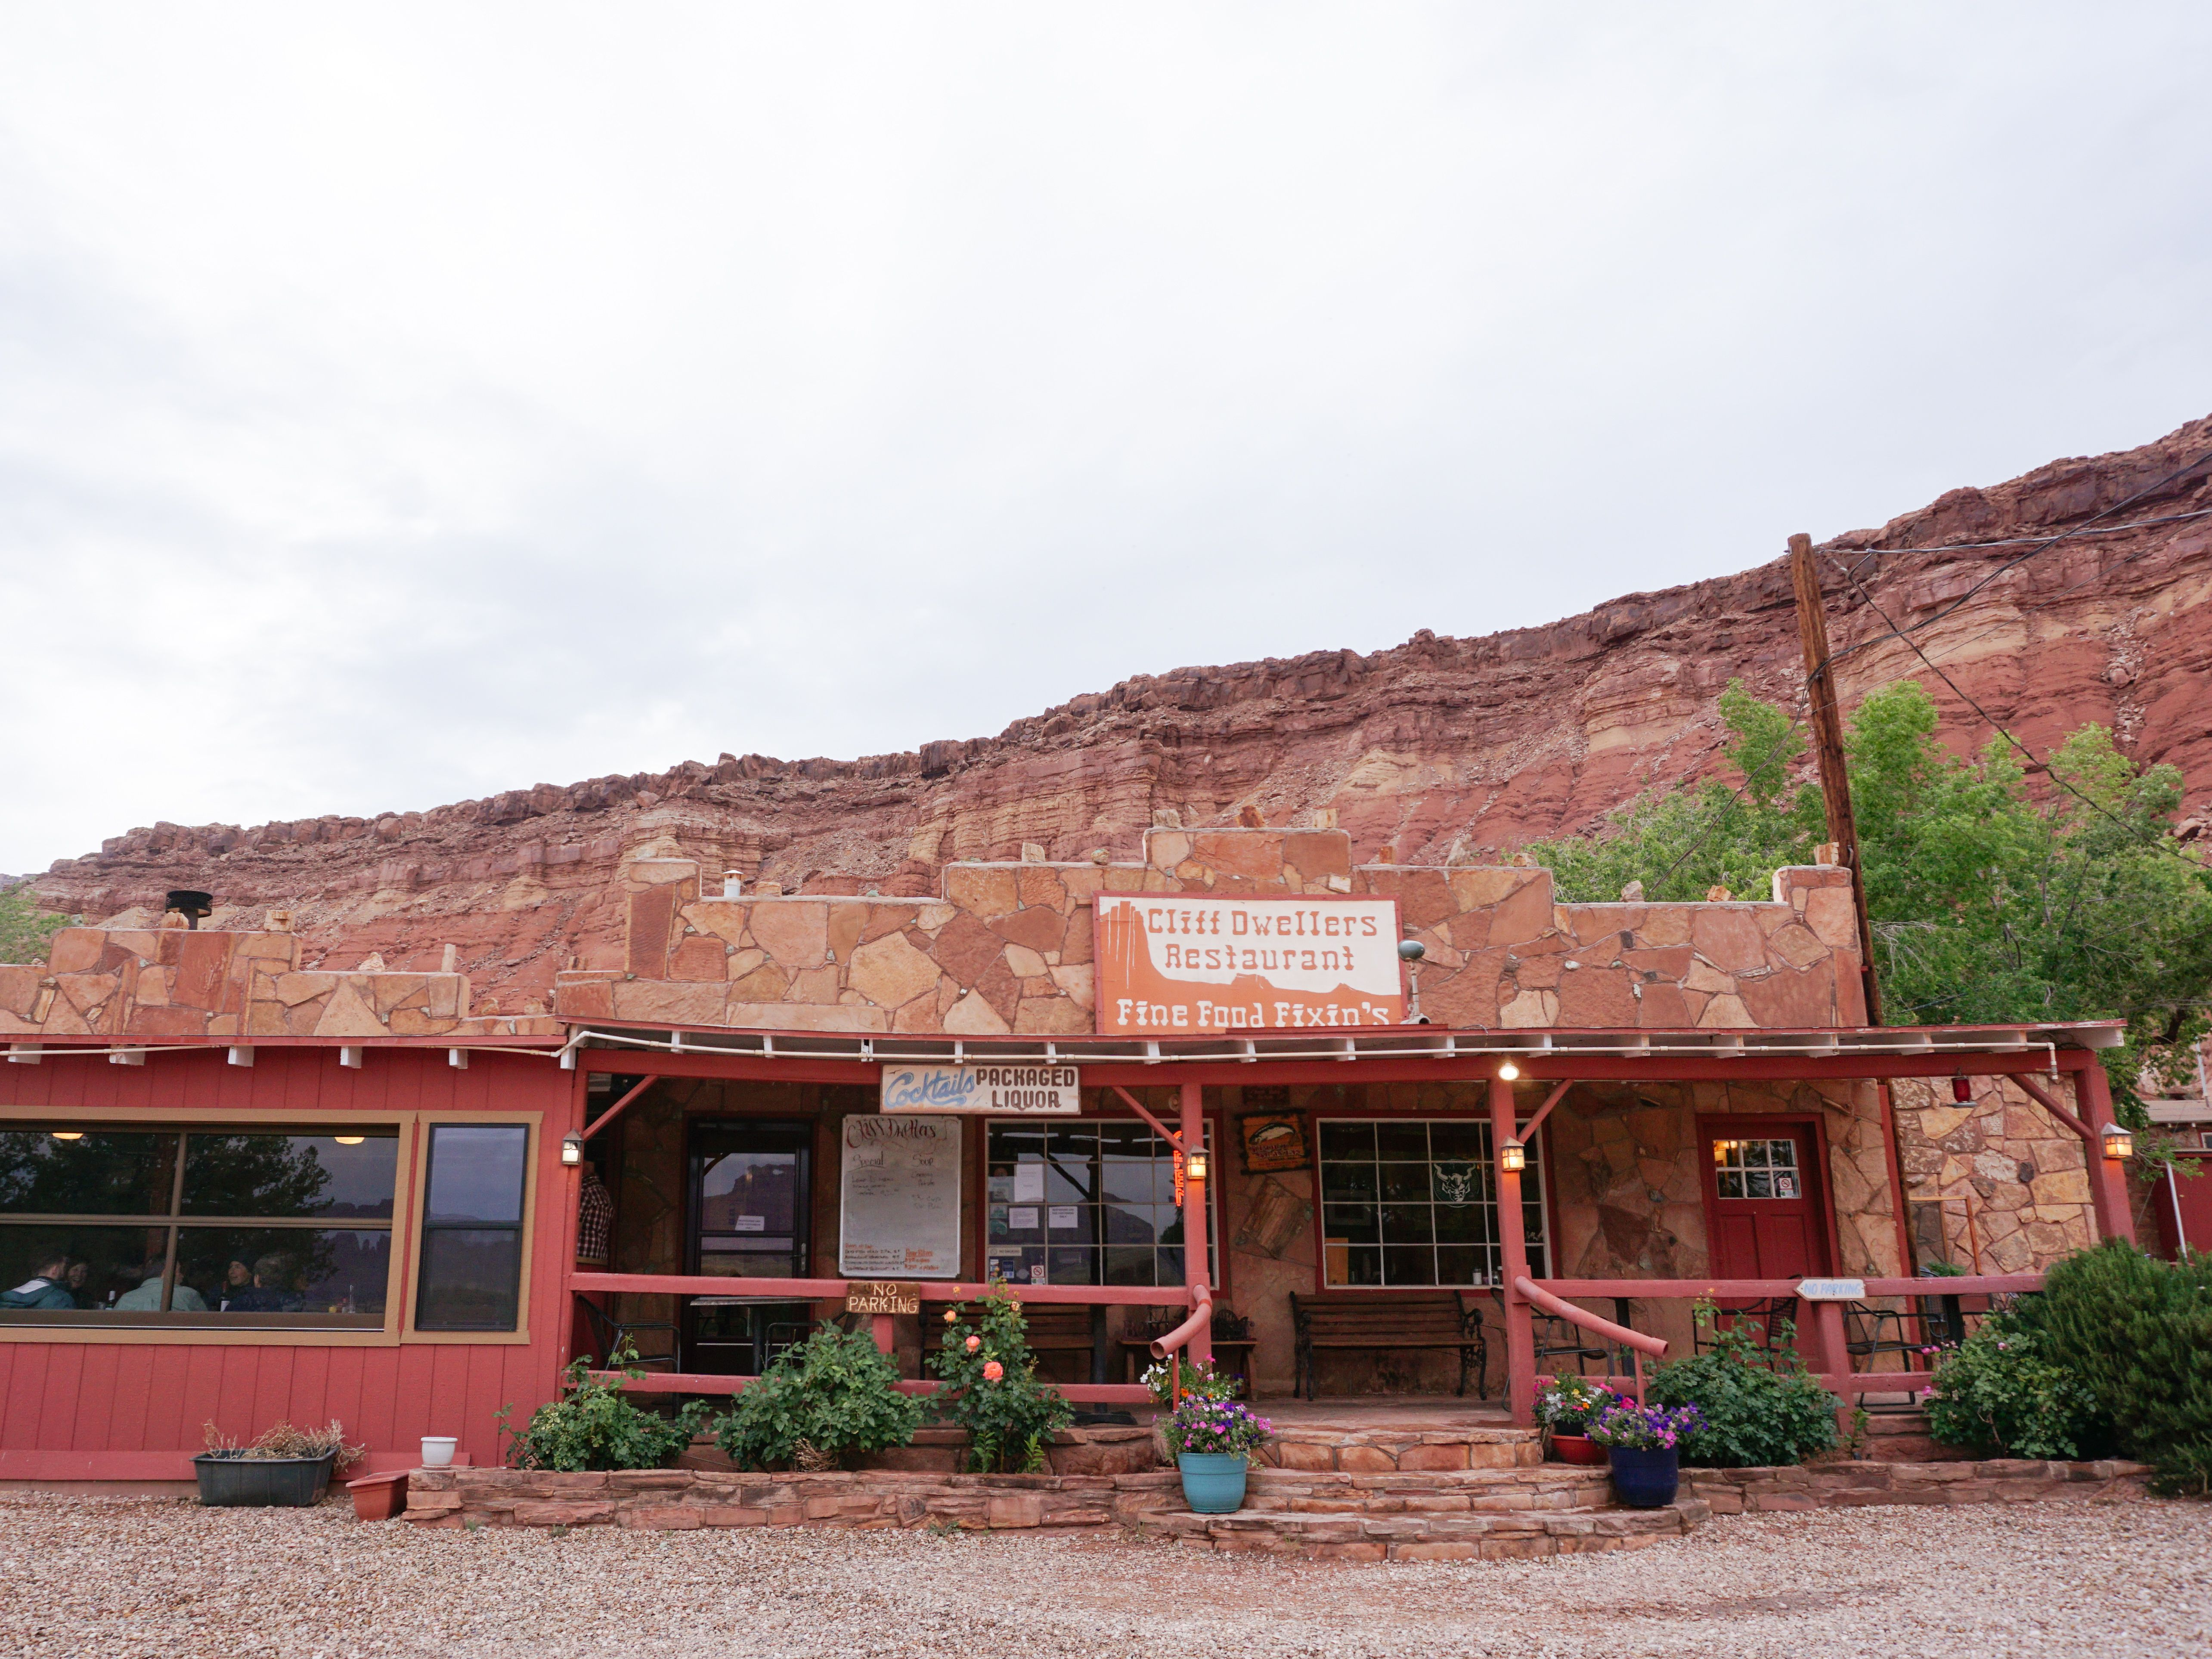 Cliff Dweller S Restaurant Arizona Road Trip Stop Grand Canyon Road Trips Road Trip Guides Canyon Road